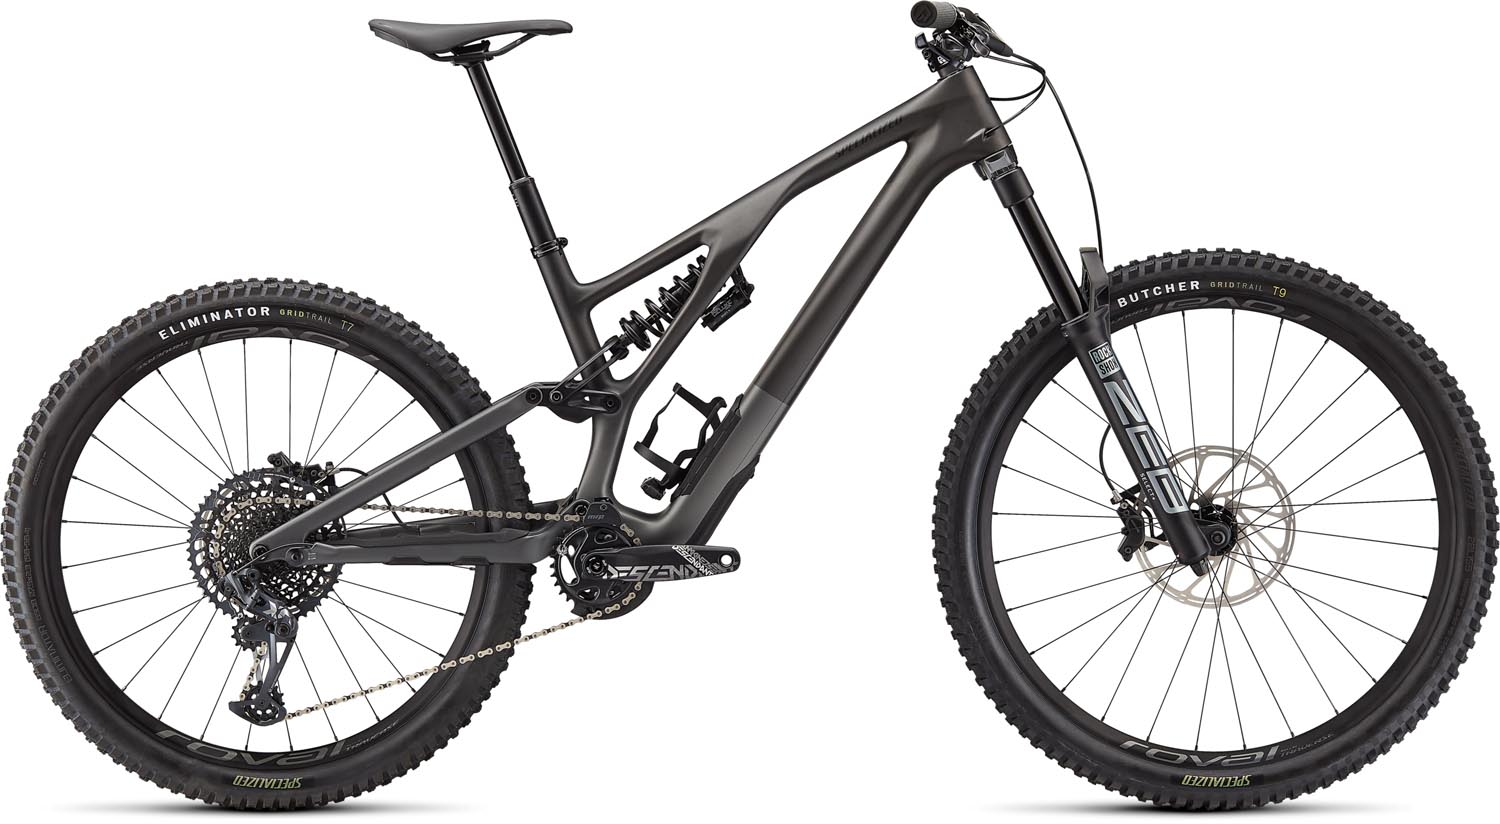 horské kolo Specialized Stumpjumper FSR Evo Carbon LTD 2021 satin charcoal/black